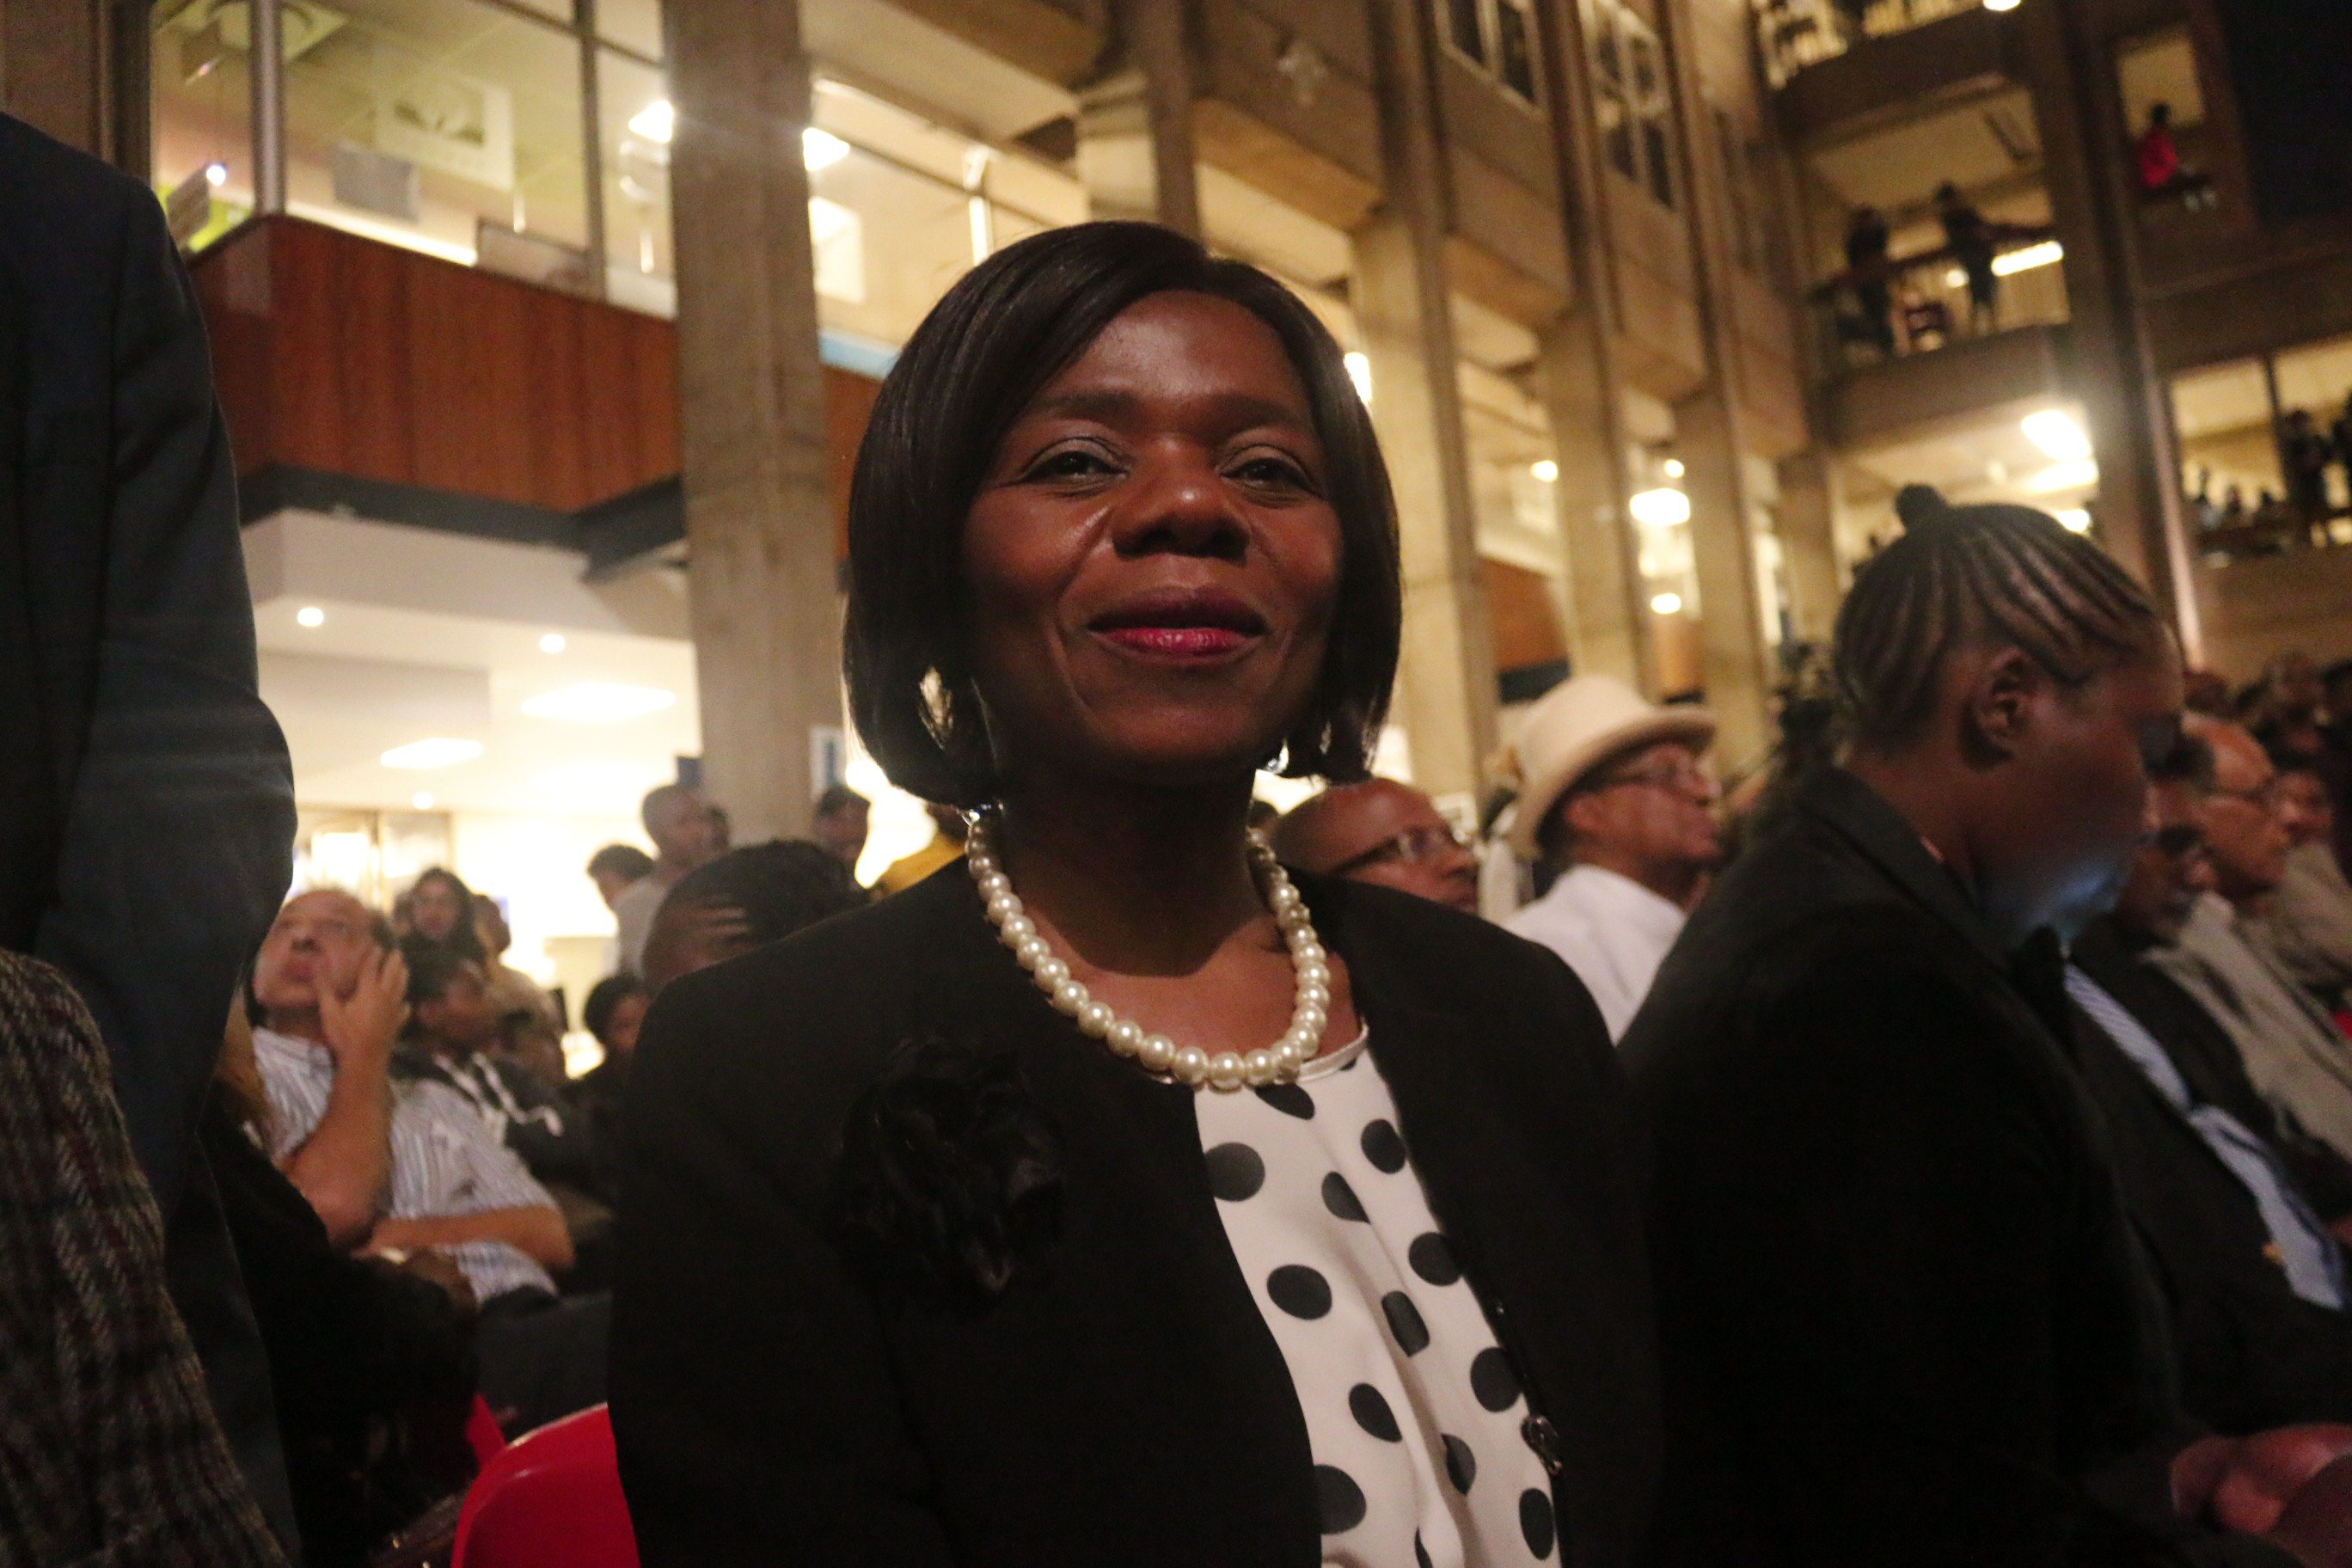 Thuli Madonsela adds her voice to #FMF